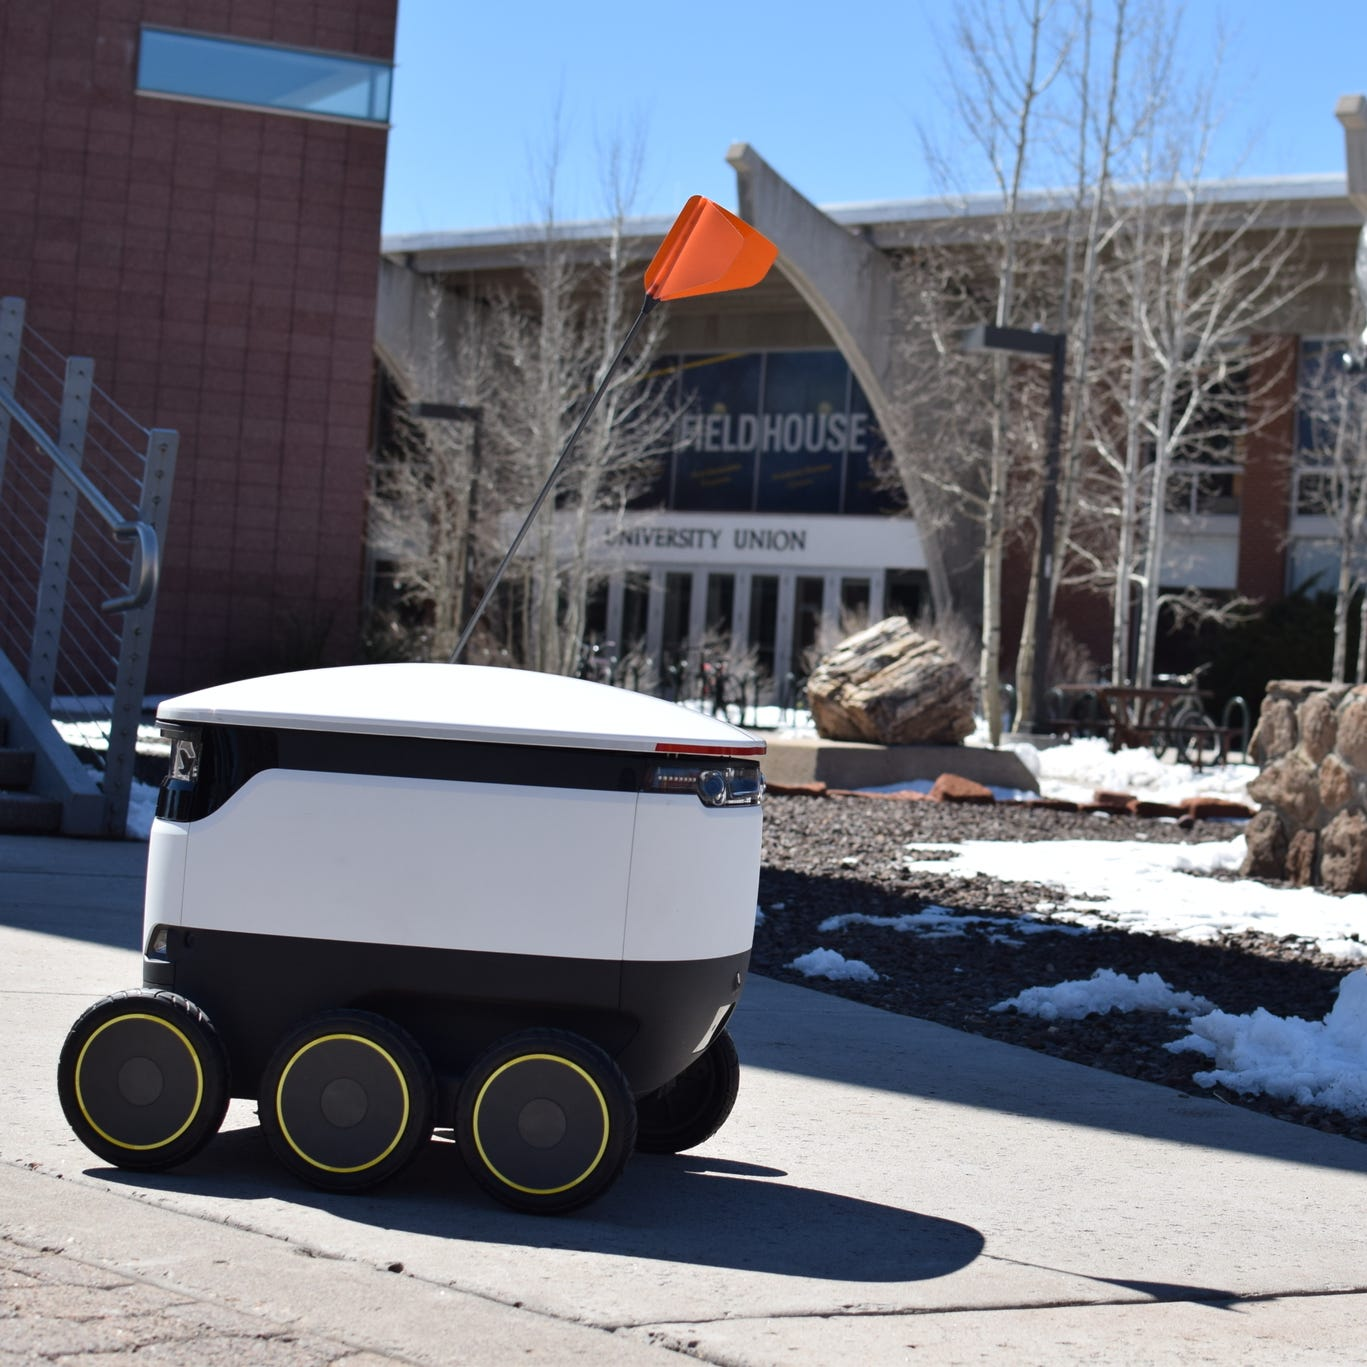 Food-delivery robots begin roaming Northern Arizona University's campus in Flagstaff